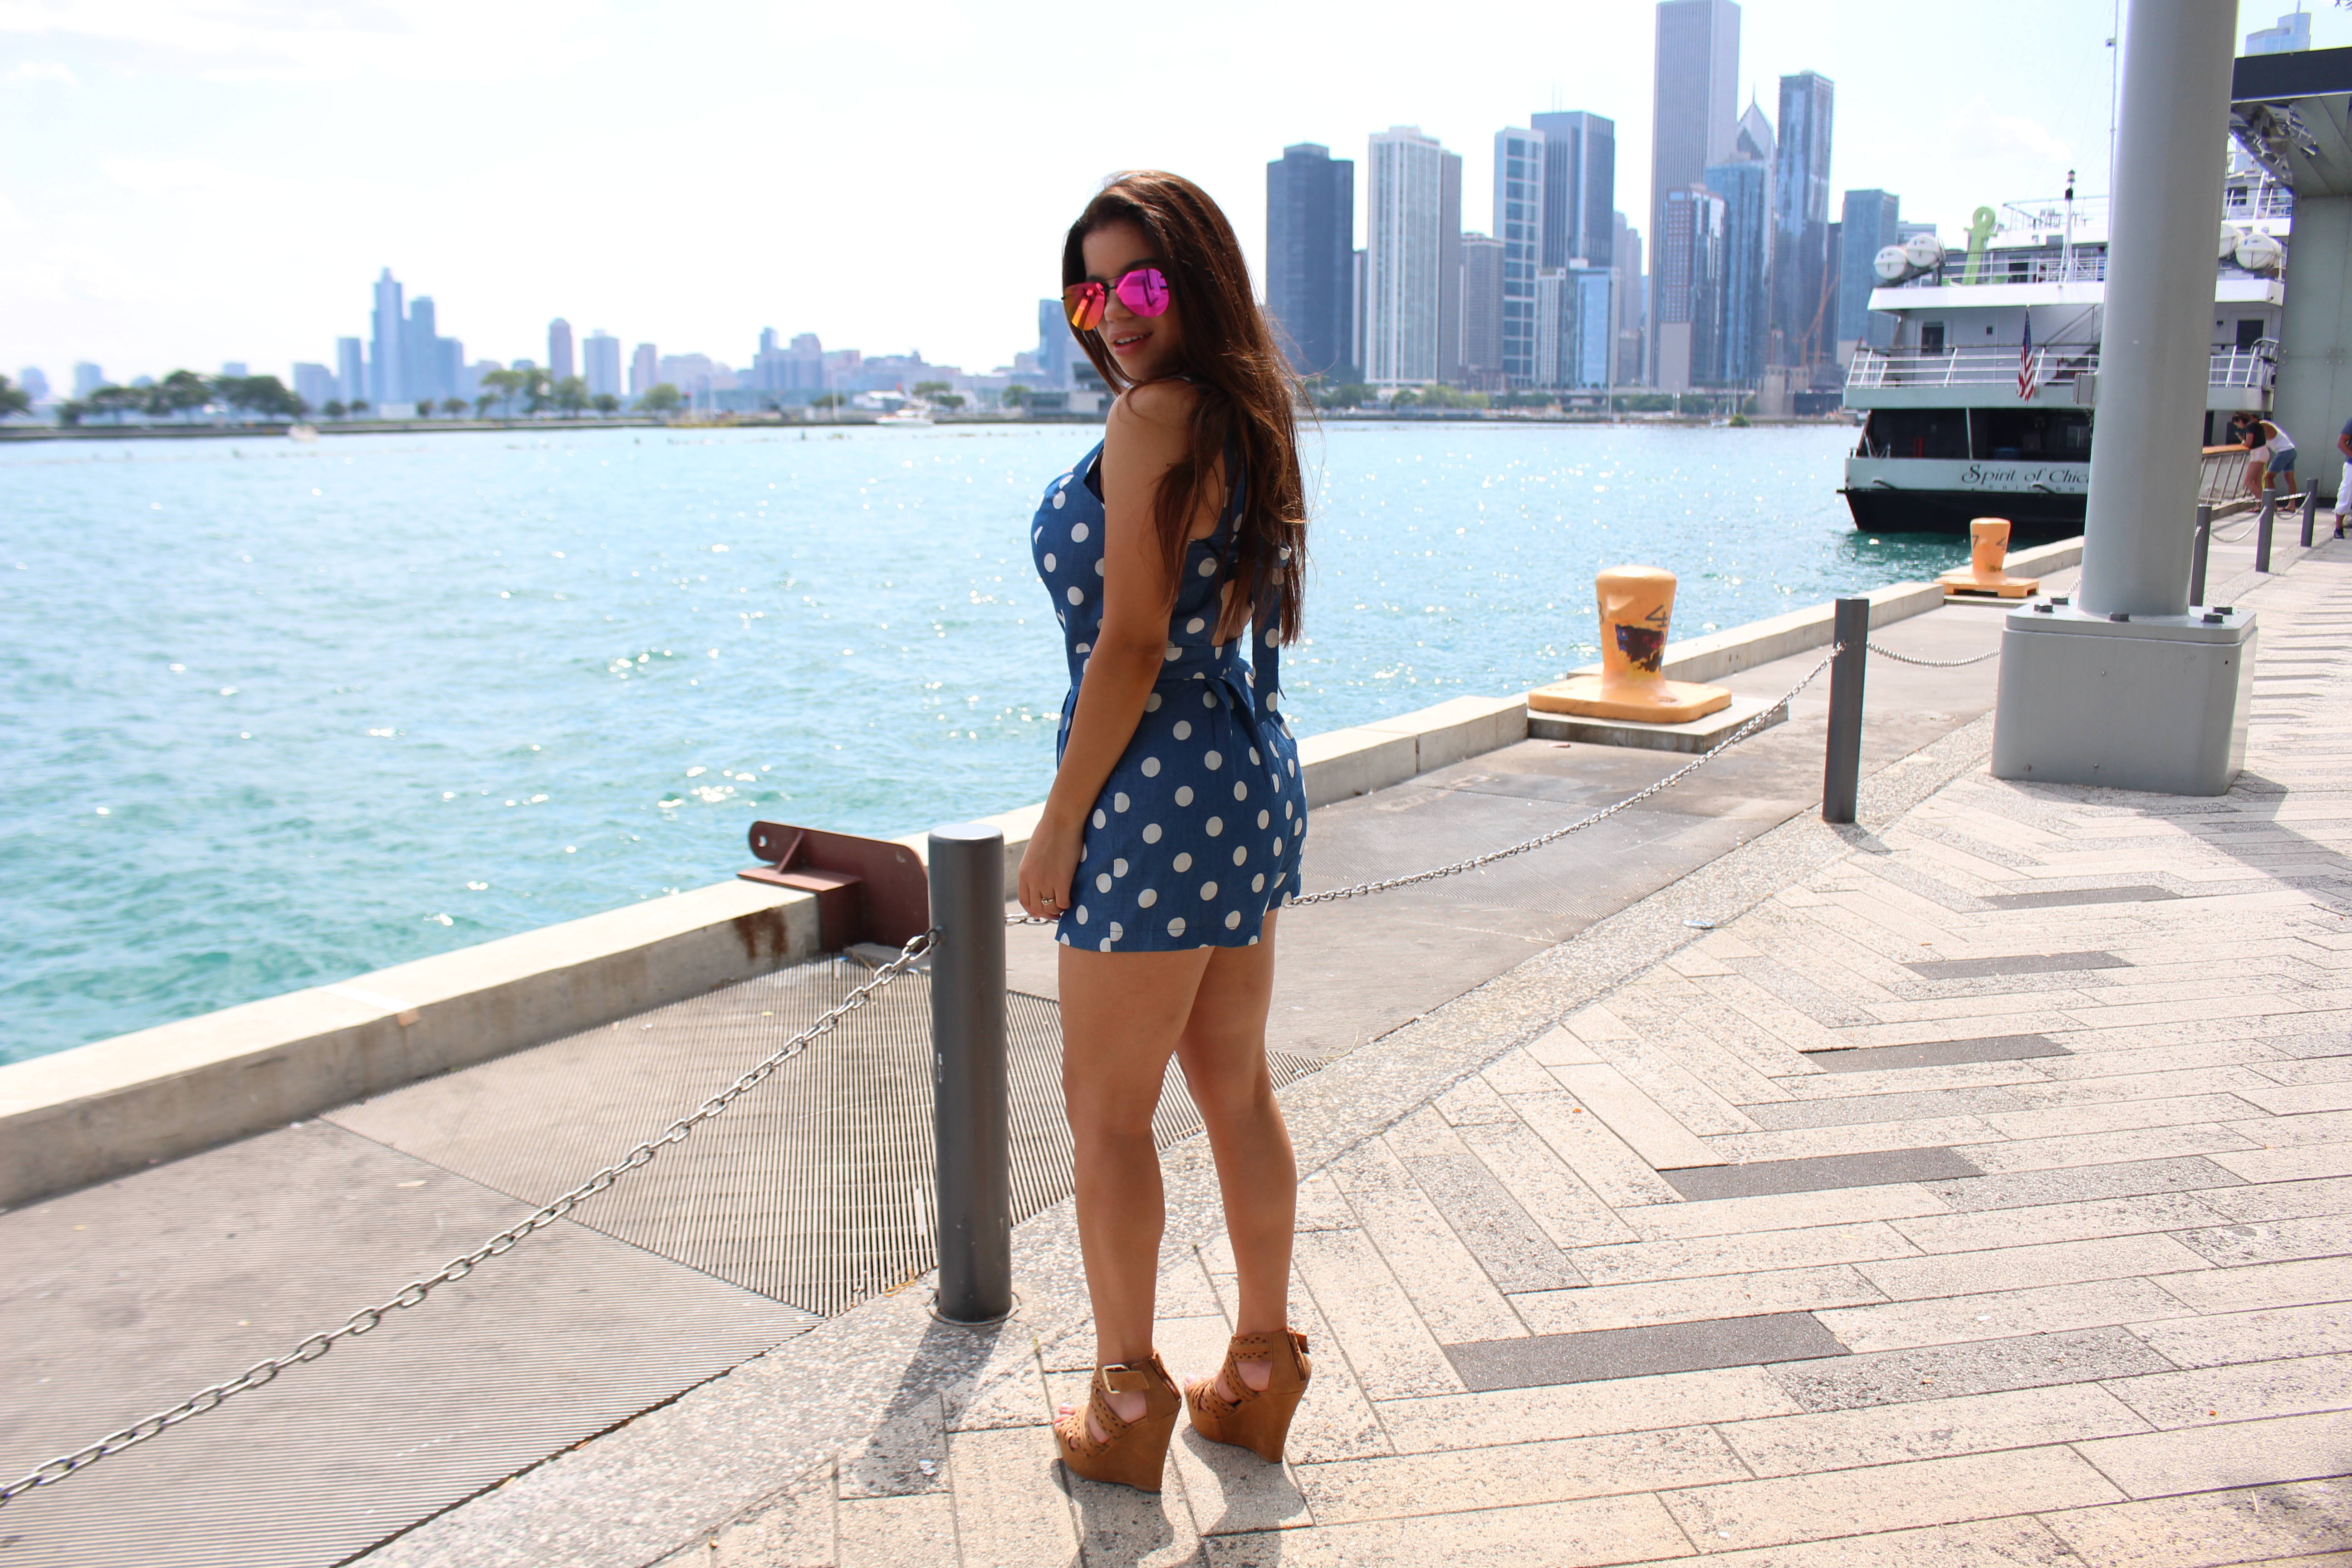 32fd4f2232ba5 Navy Pier Jumpsuit Chicago Il Quay Australia the playa summer outfit OOTD  by Tu Fashion Petite Alejandra Avila